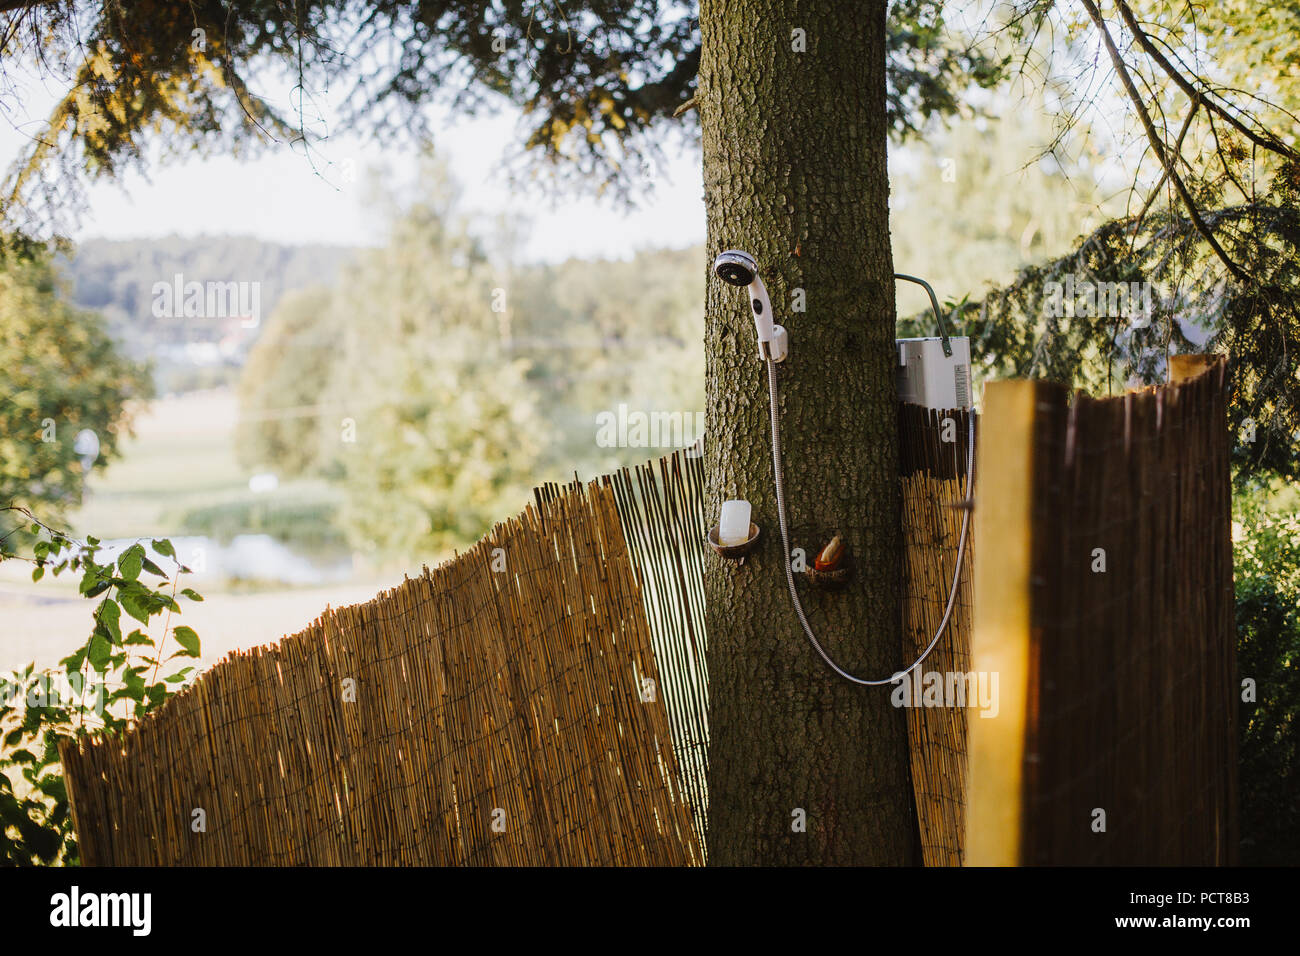 outdoor shower in a garden in germany Stock Photo